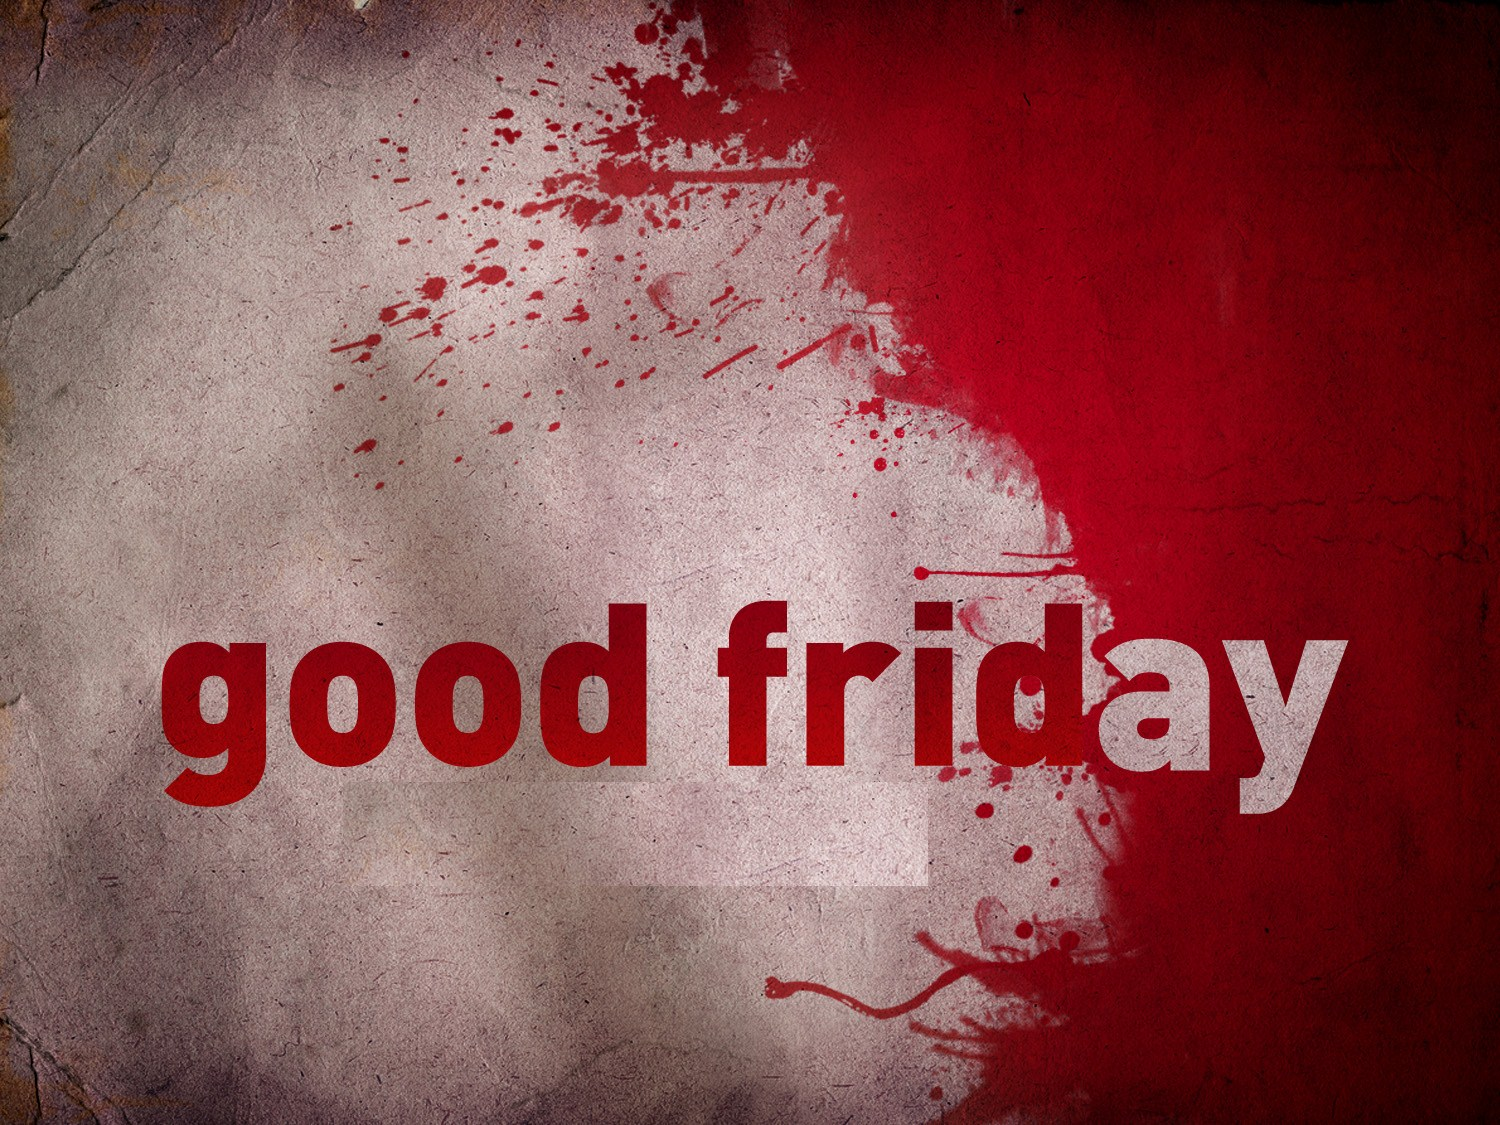 good friday backgrounds wallpapers - photo #2